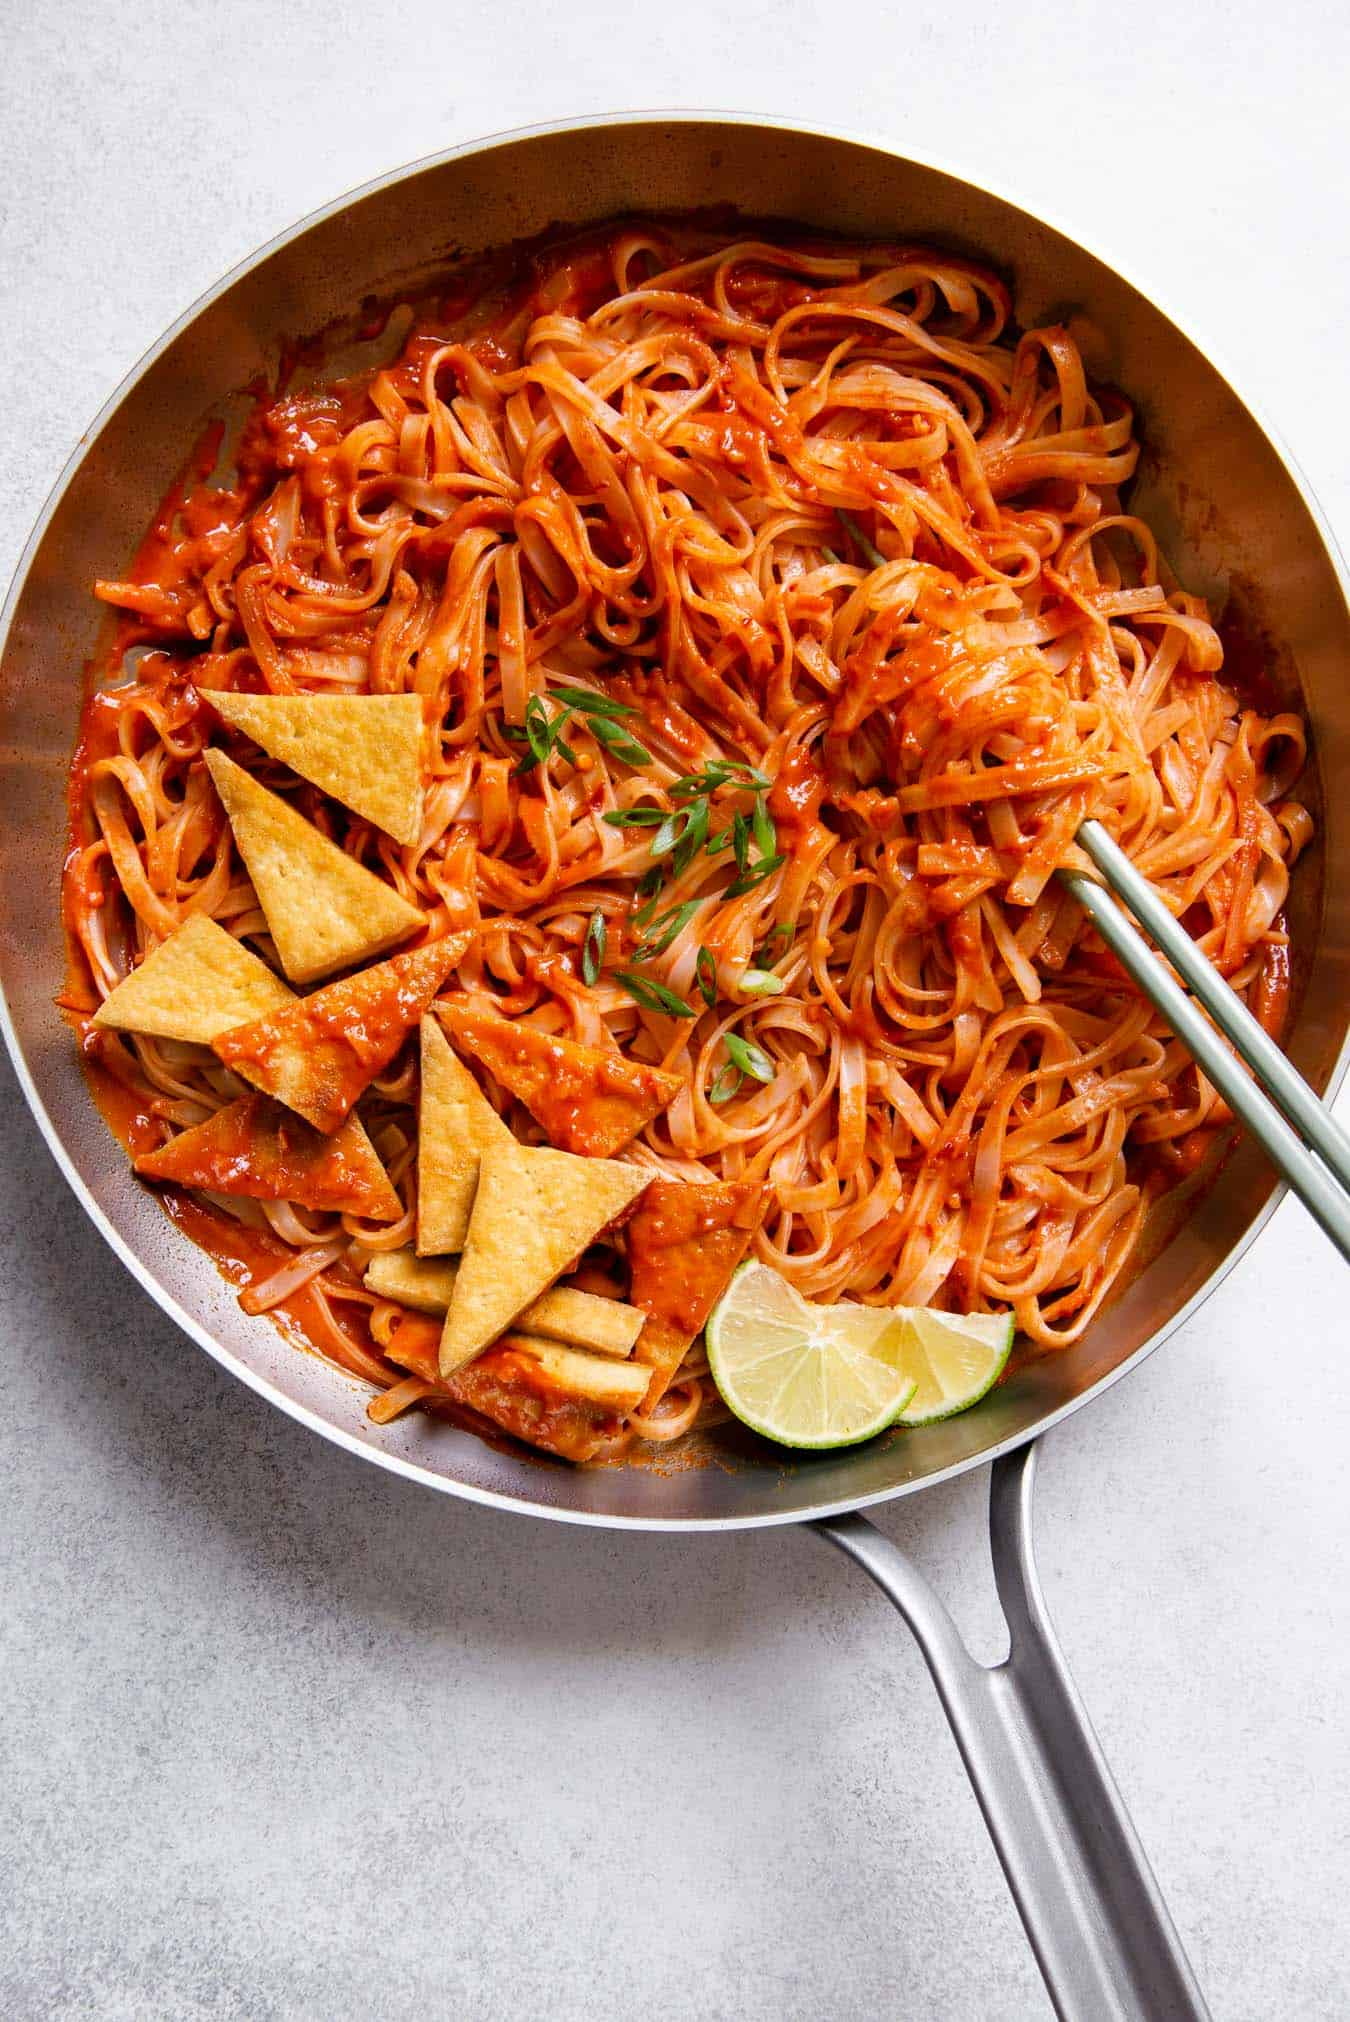 30-Minute Spicy Noodles Recipe with Pan-Fried Tofu